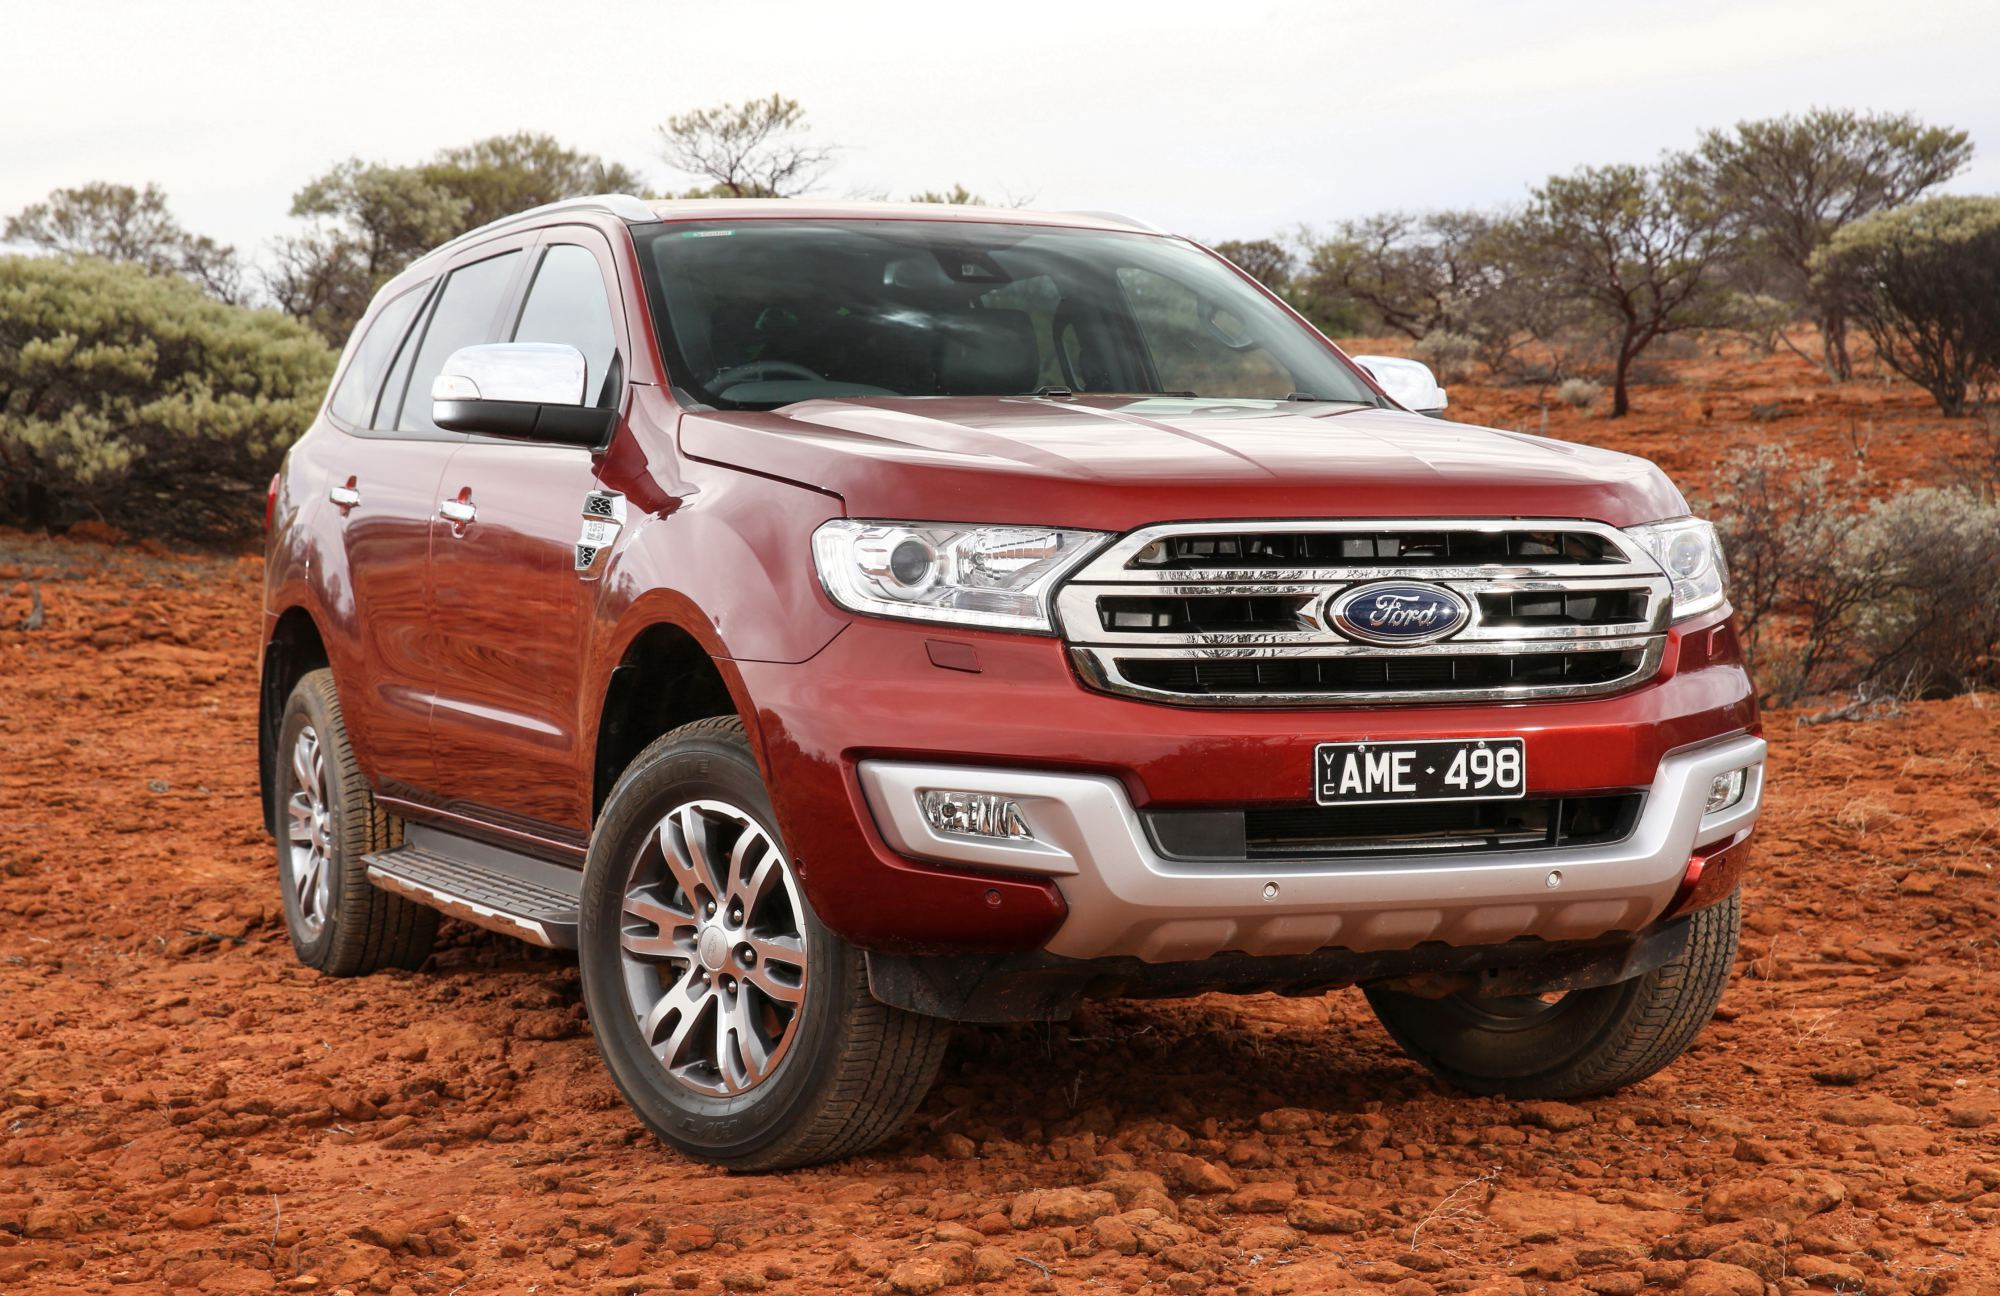 News - Ford Everest Titanium Gets Off-Road Wheel/Tyre Option